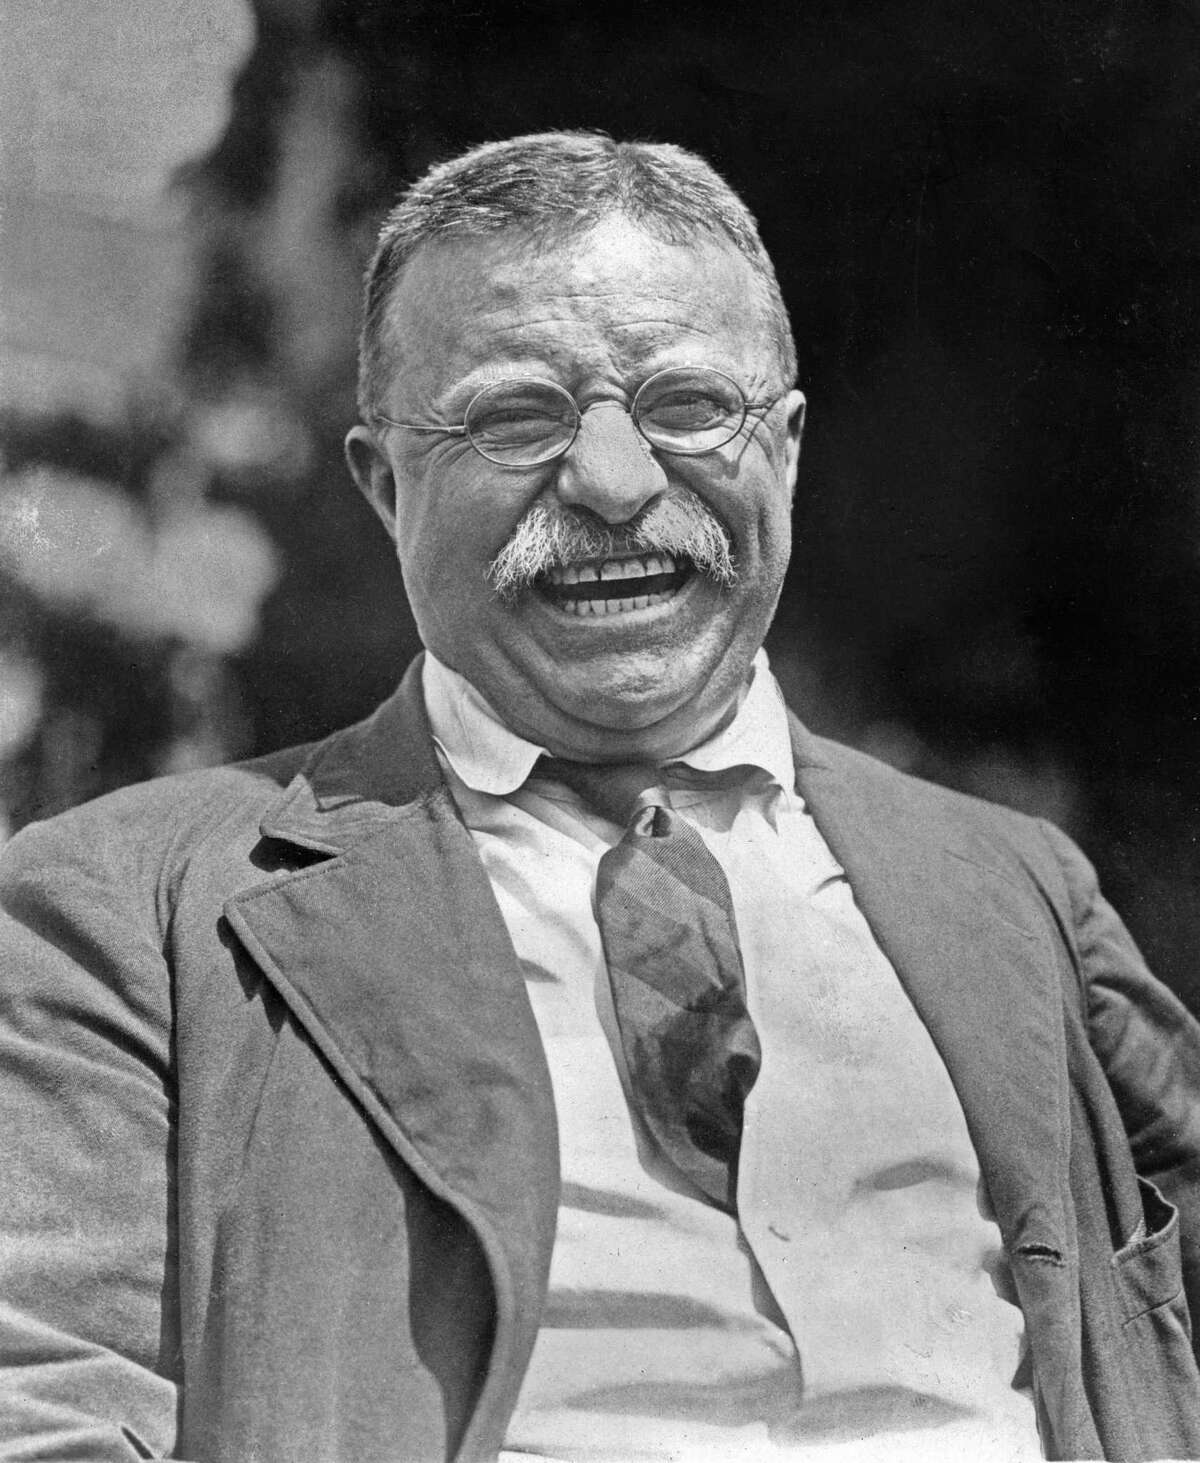 This photo provided by Brown Brothers shows Teddy Roosevelt at his Oyster Bay, N.Y., home in 1912. This president railed against corporations and the inequity they spawned - a theme Democratic presidential candidates are echoing.